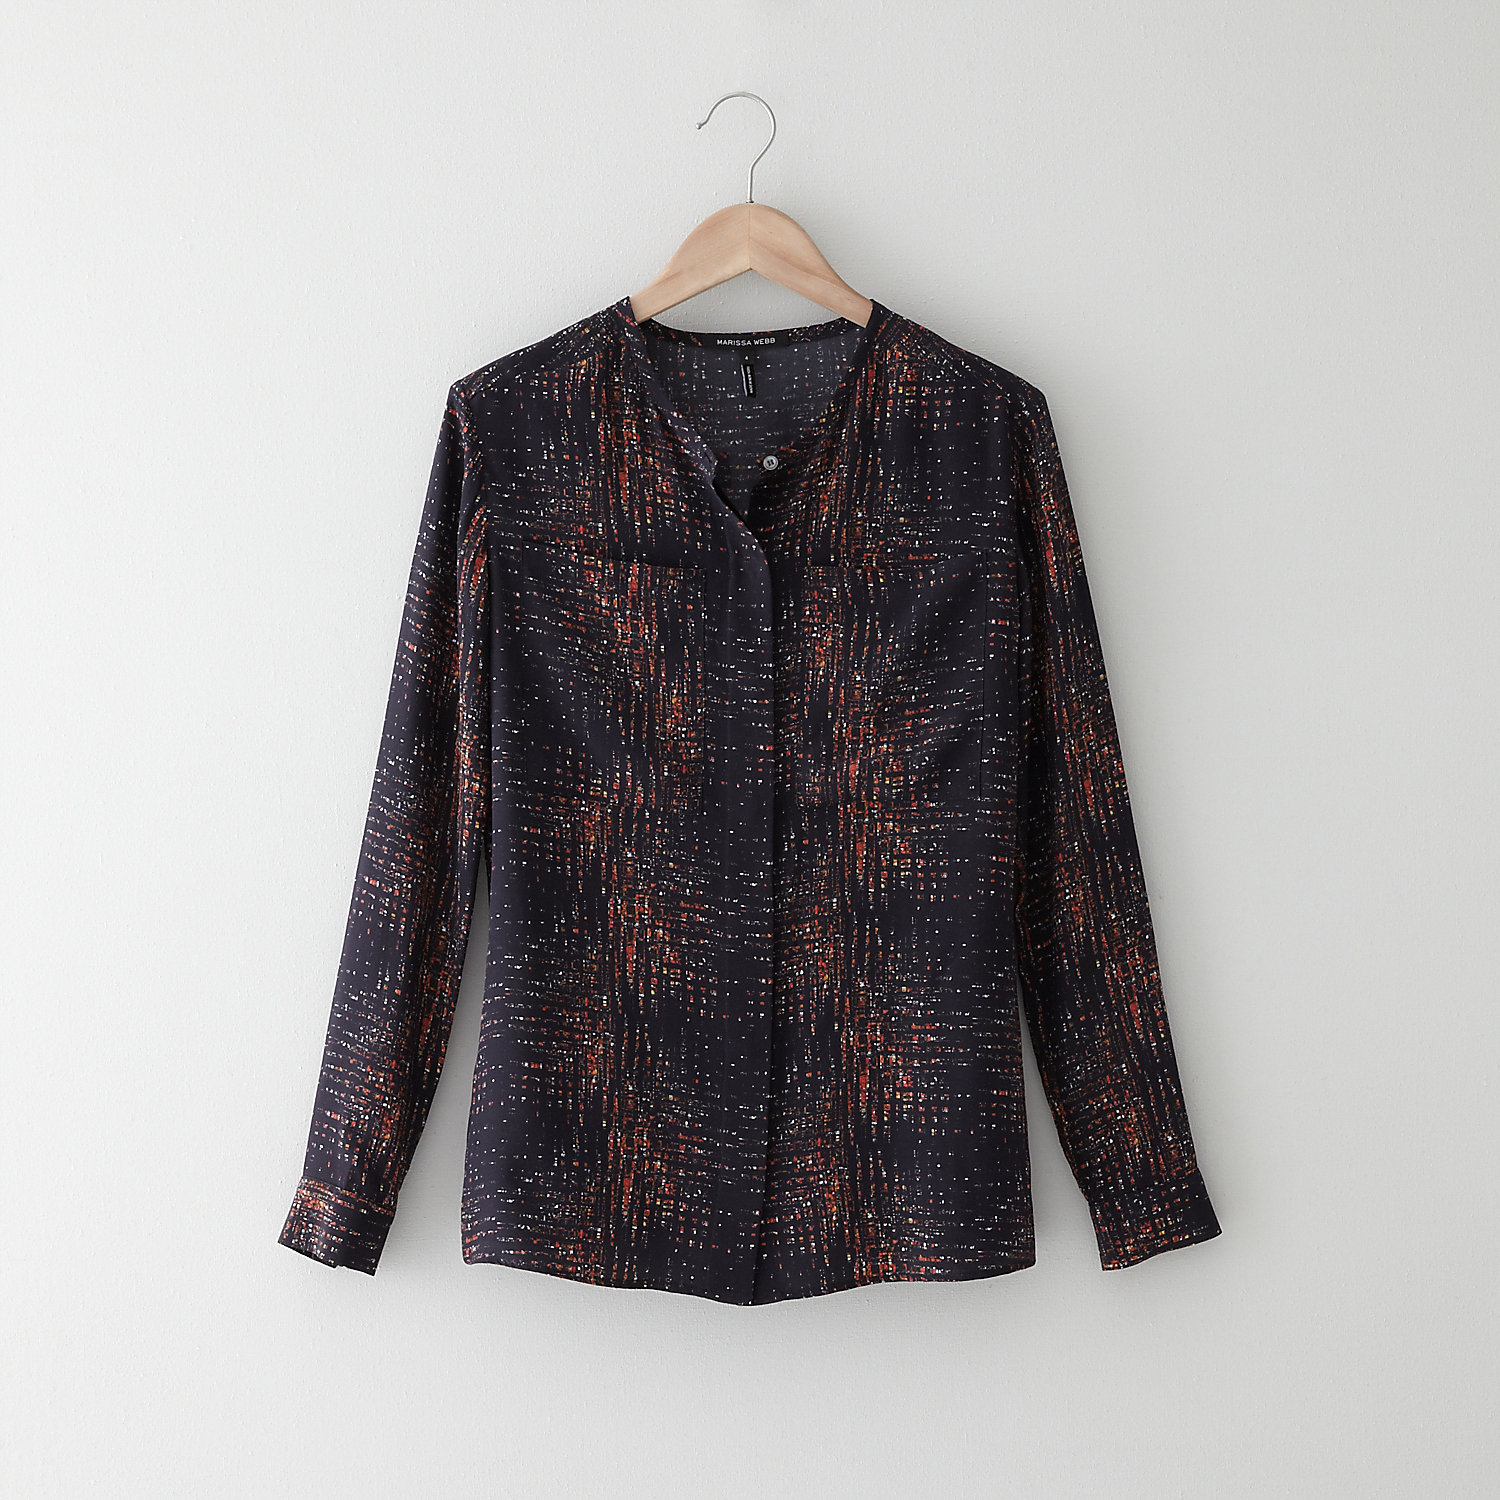 LYNETTE CITY LIGHTS BLOUSE